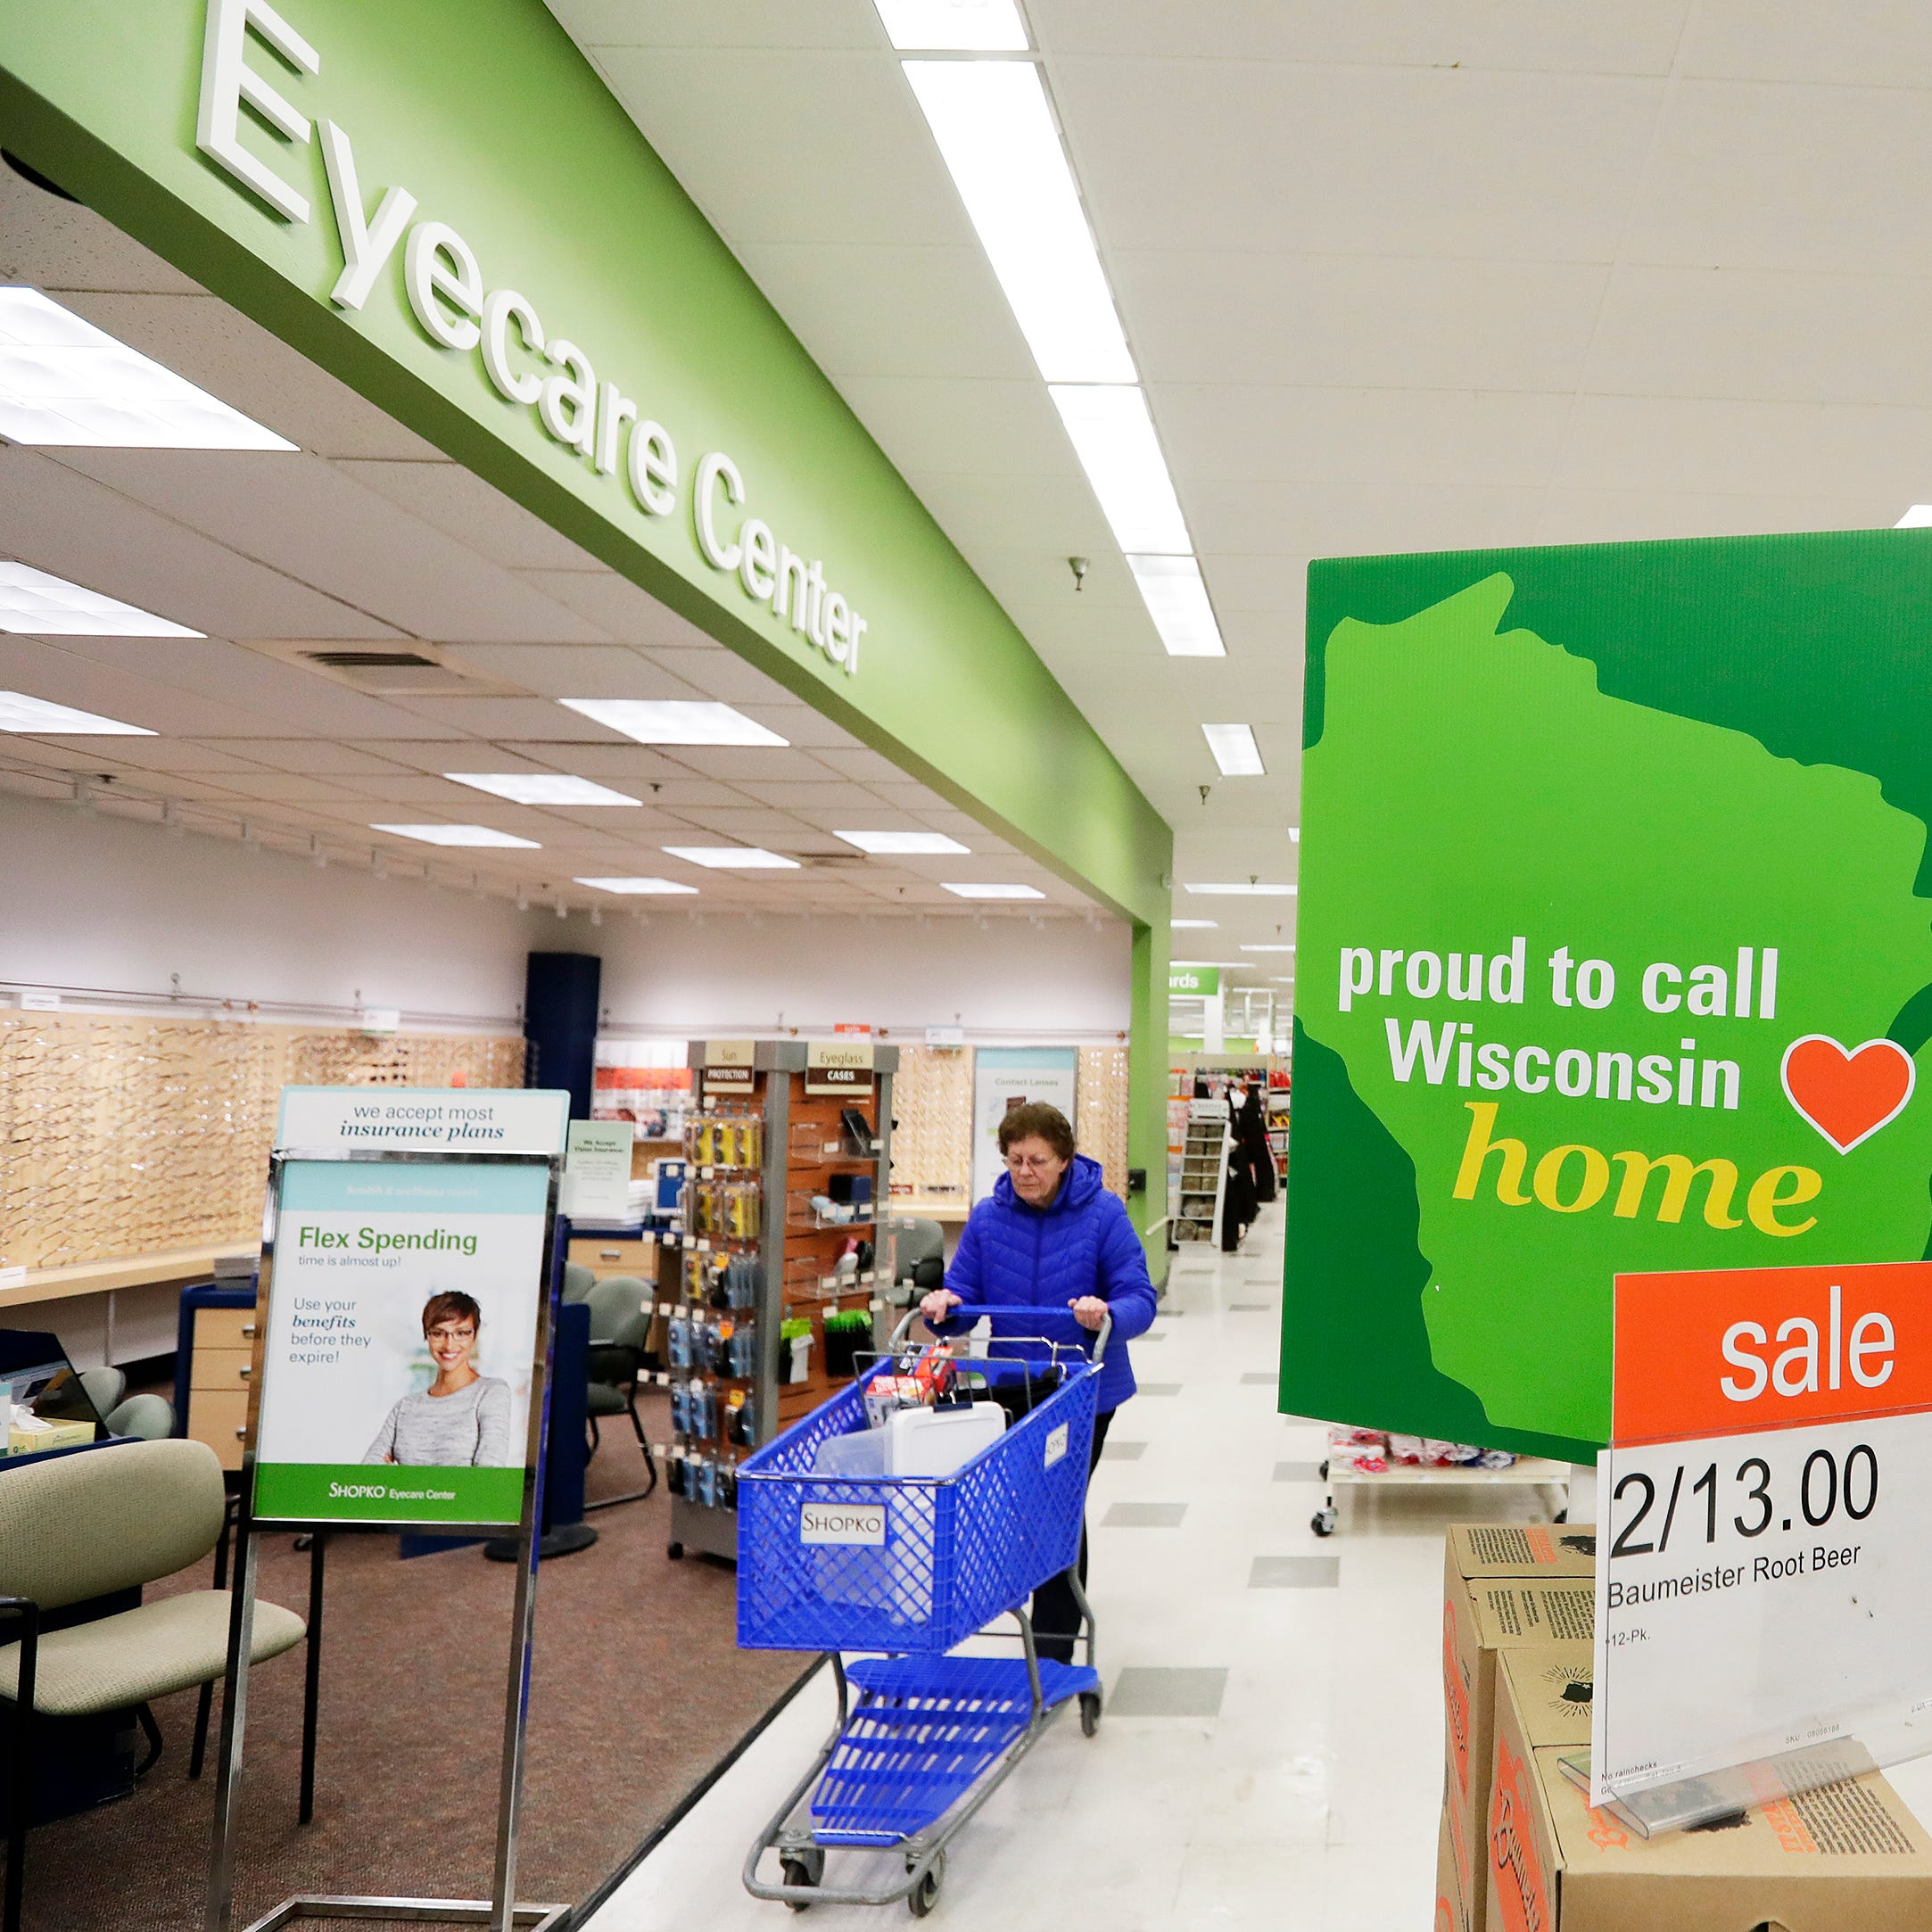 Shopko creditors ask judge to delay 'flawed' auction of optical business, 2 bidders ID'd